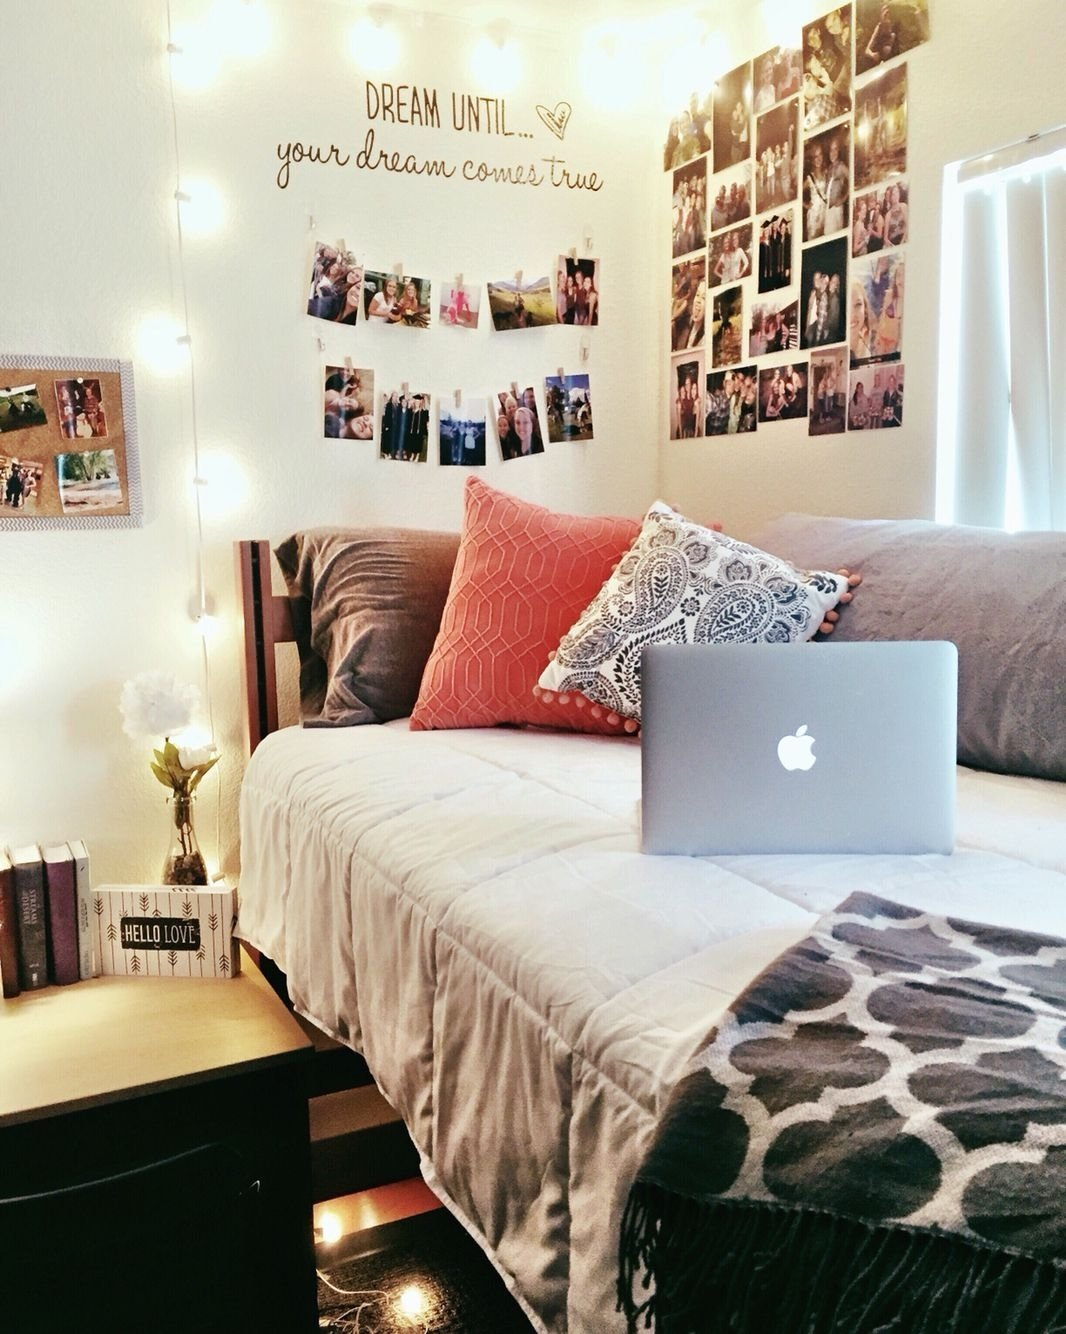 10 Cute College Dorm Ideas For Girls pceb9nd182ered195d182e286a0 lacf85rend0b2oge pinteres 2020